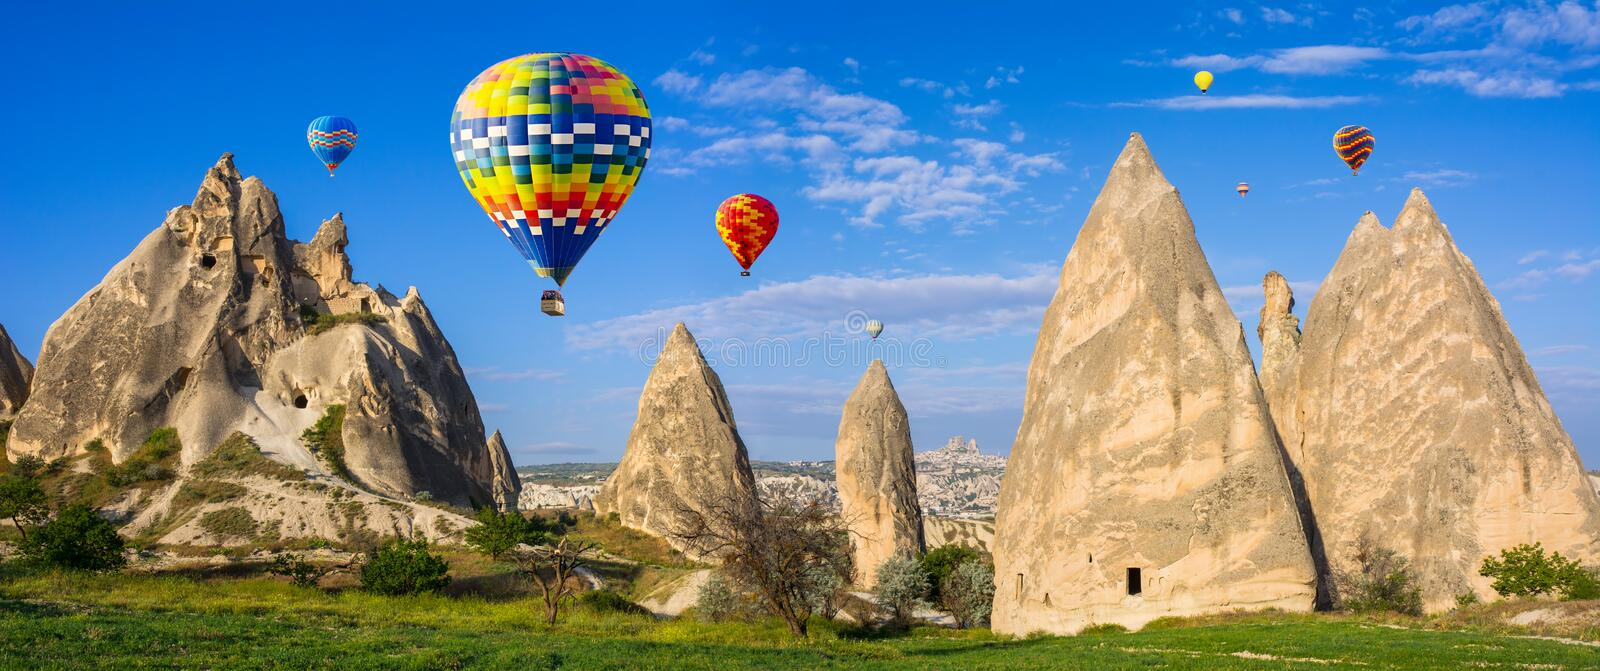 La grande attraction touristique de Cappadocia - montez en ballon le vol capuchon photographie stock